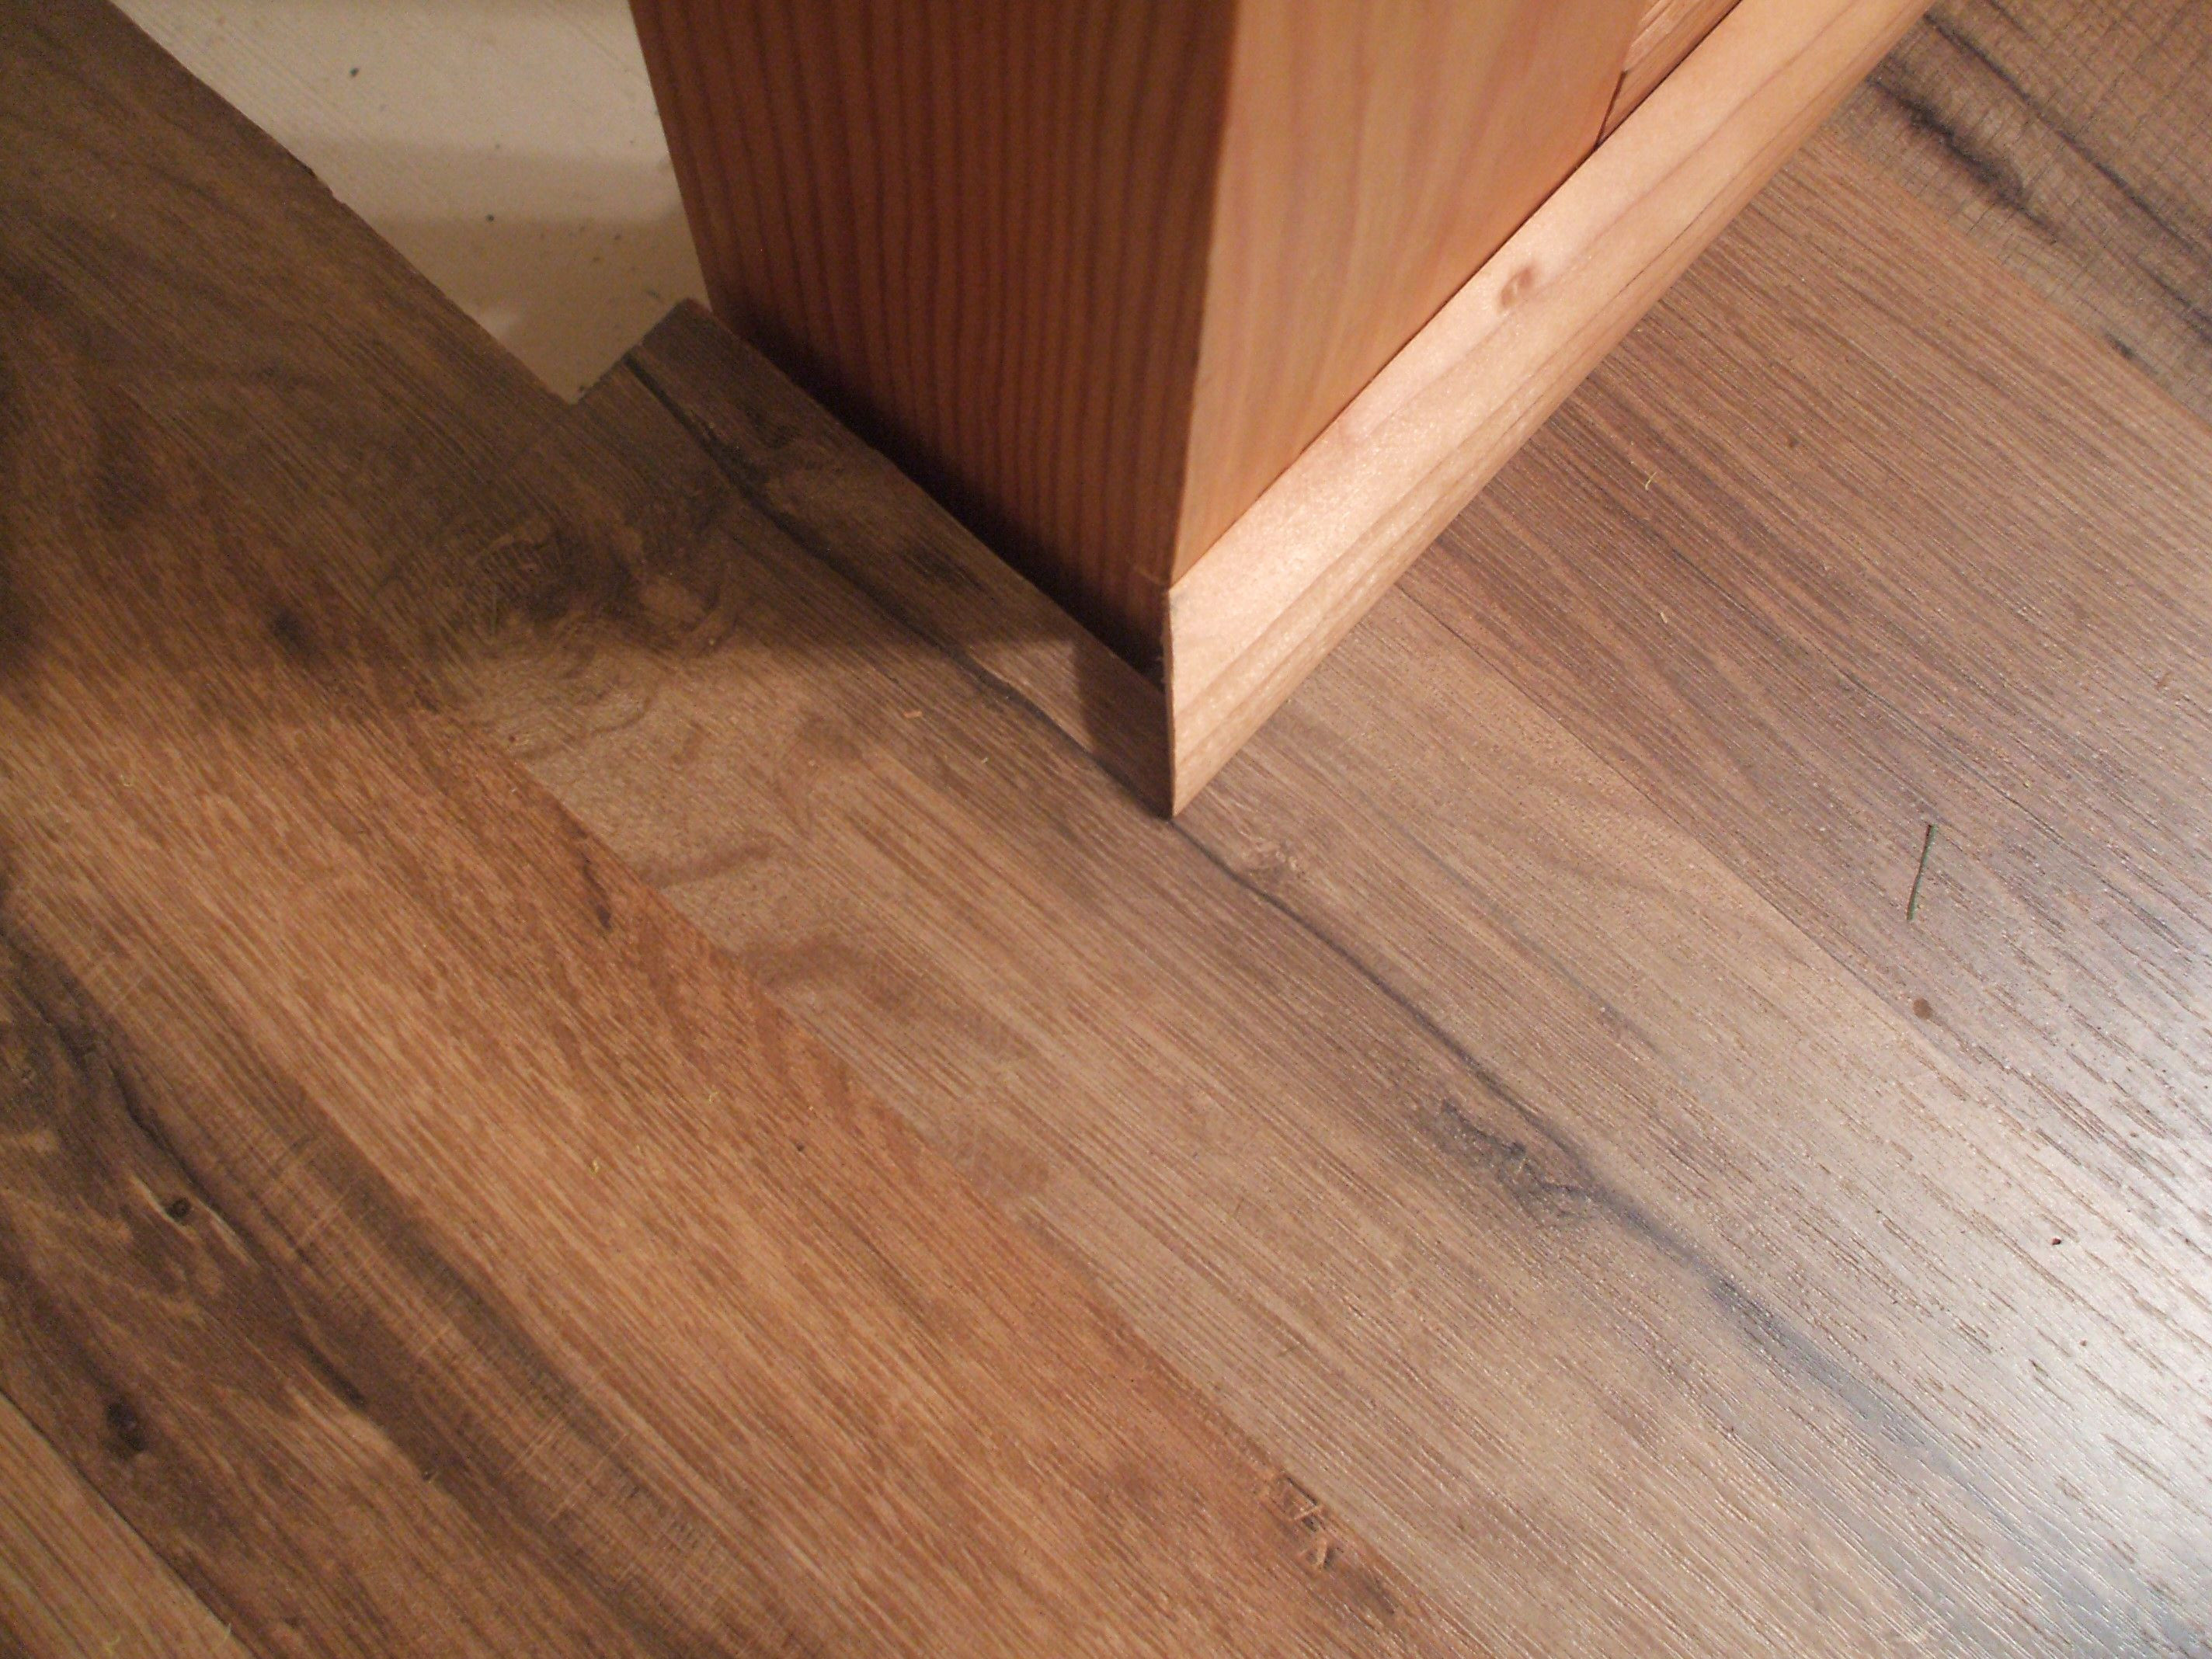 hardwood floor refinishing bend oregon of how to install shoe molding or quarter round molding inside set first piece in place 56a49e523df78cf772834b40 jpg